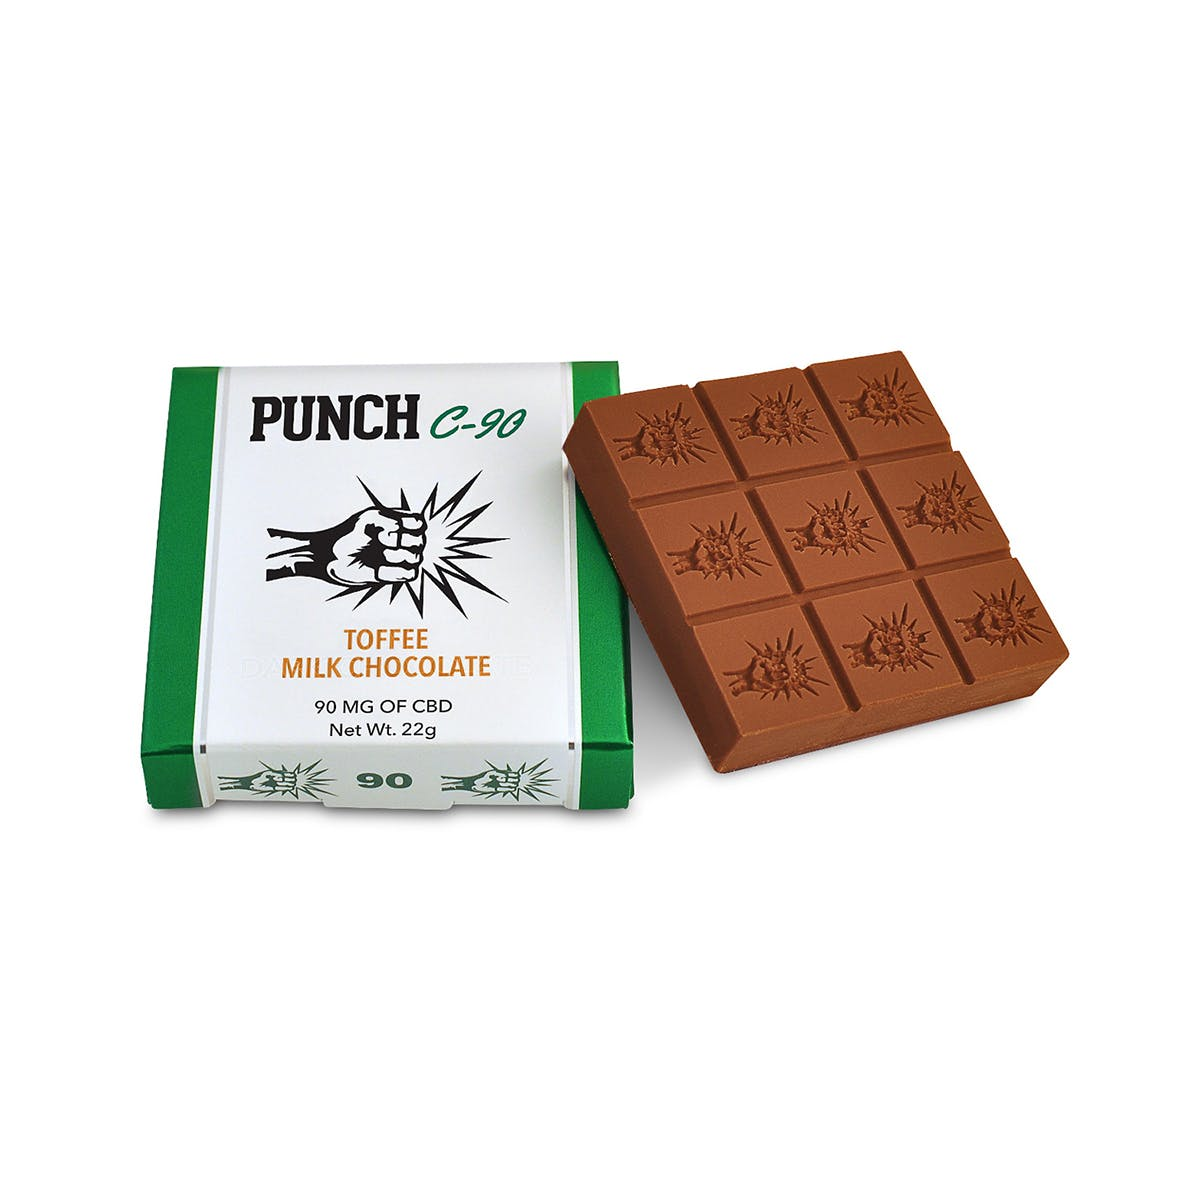 marijuana-dispensaries-county-line-organics-in-ridgecrest-c-90-cbd-toffee-milk-chocolate-90mg